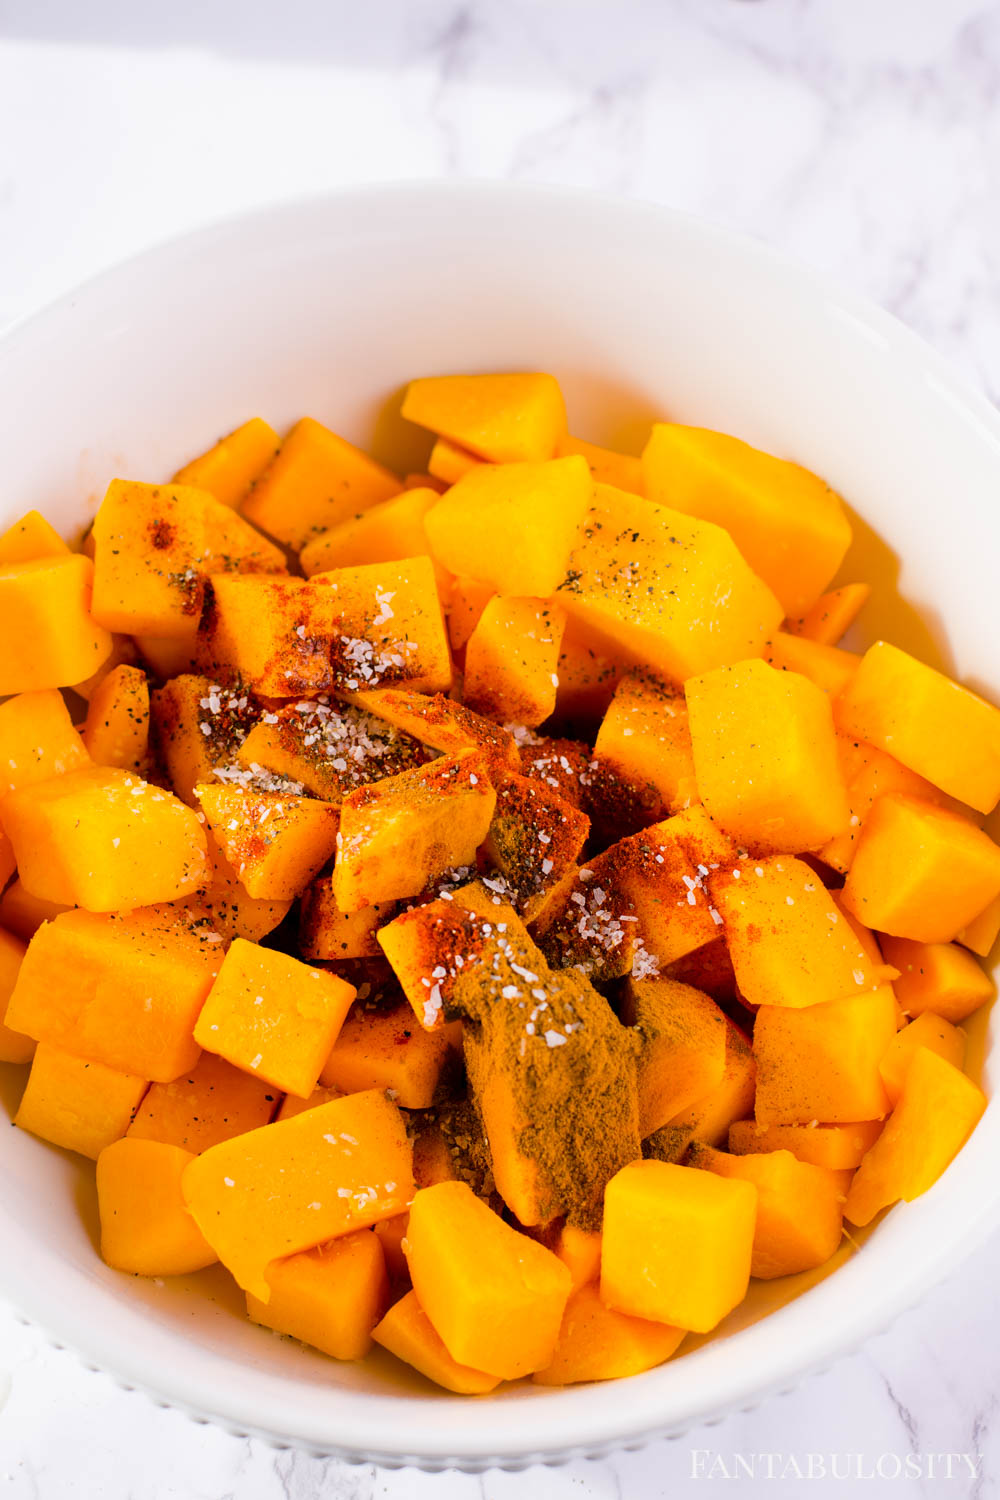 Seasonings for butternut squash in air fryer